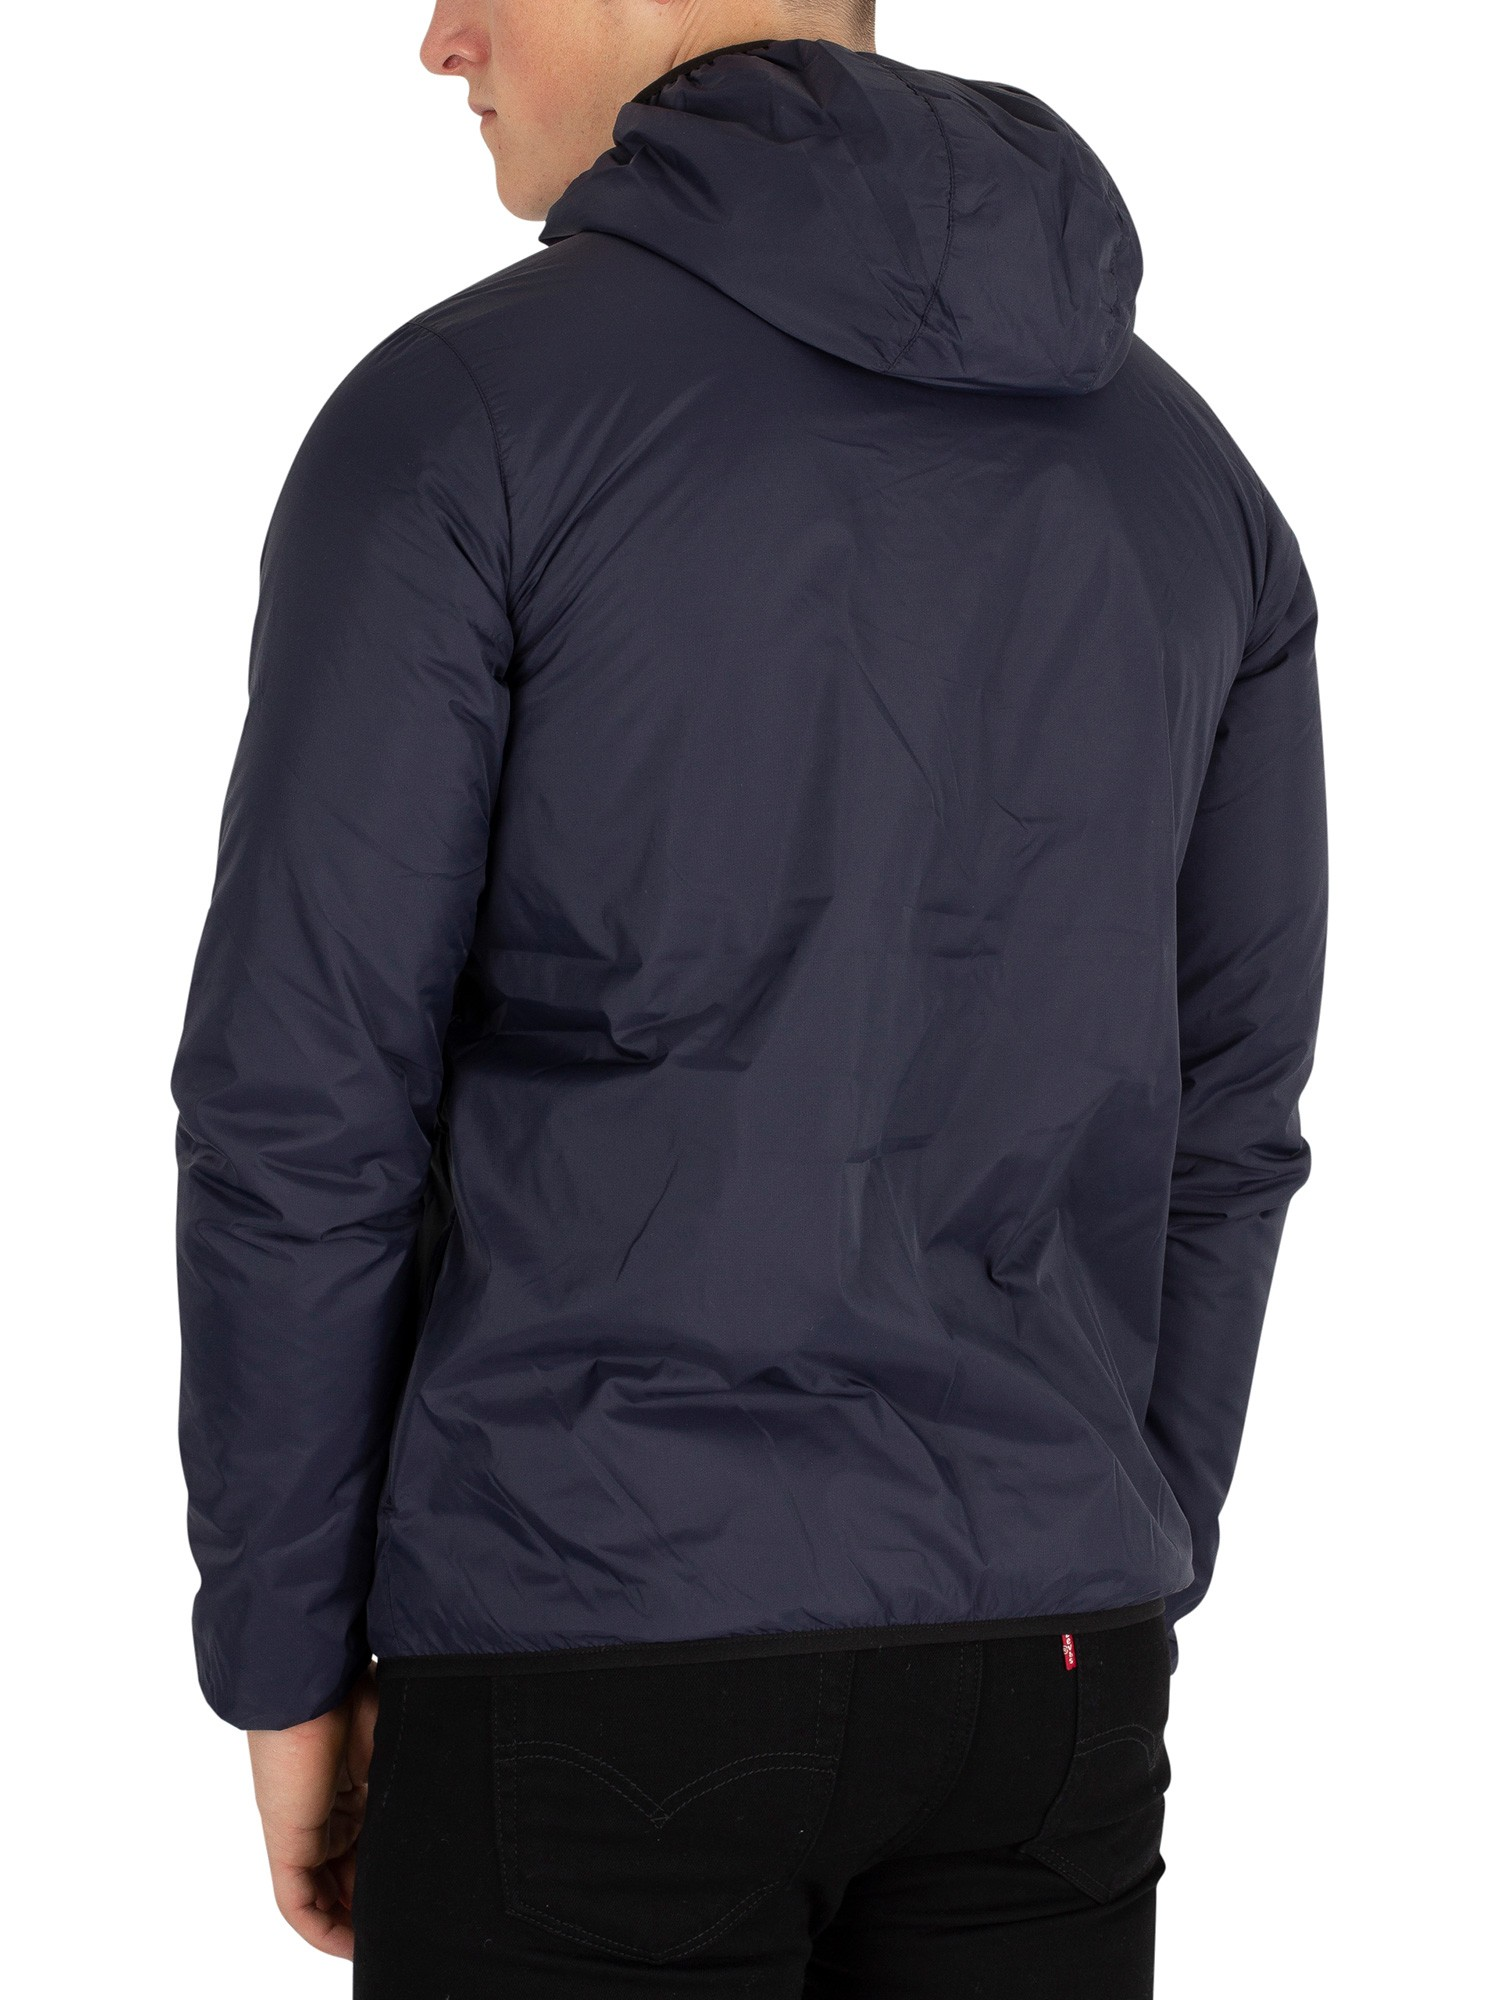 K-Way Le Vrai 3.0 Claude L.W Jacket - Blue Depht